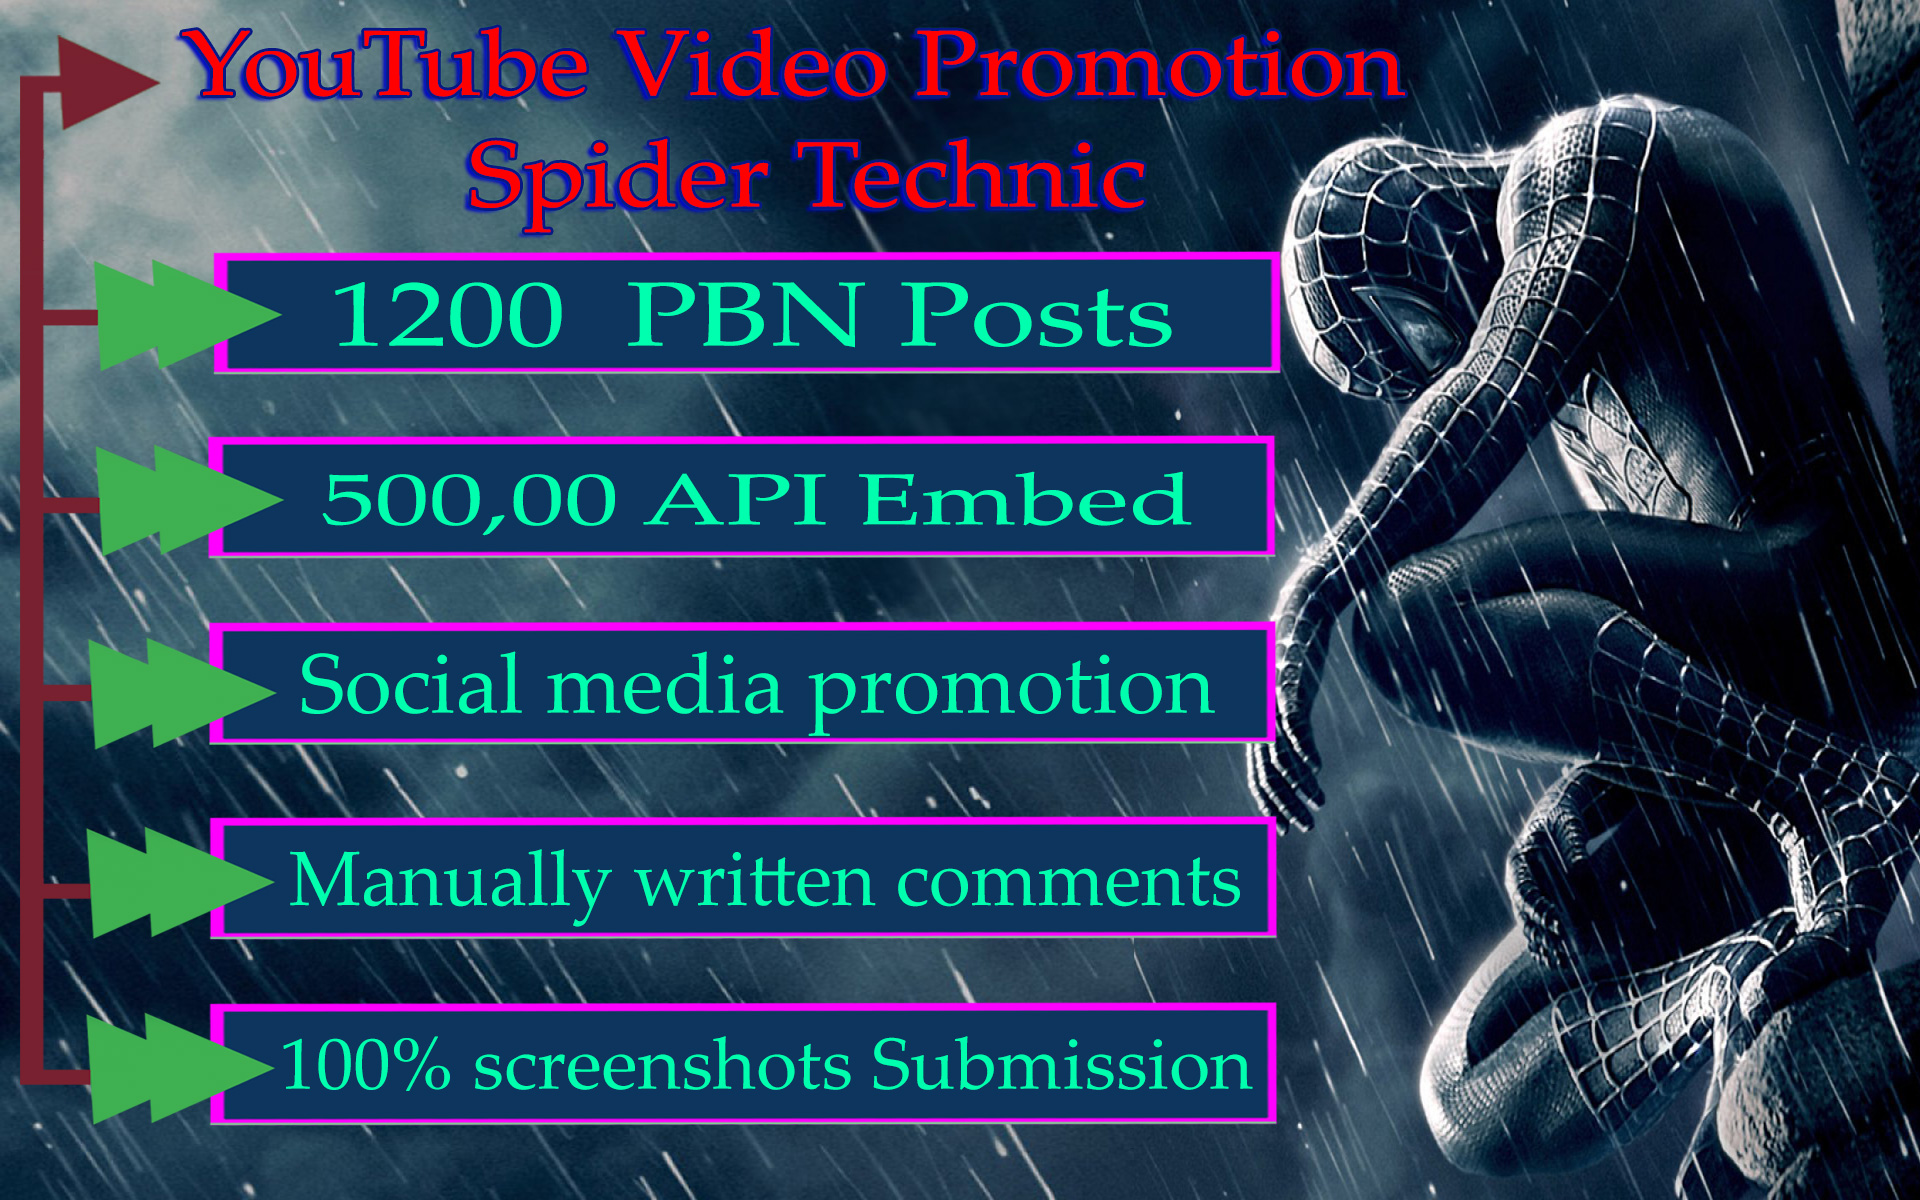 Spider Technic YouTube Video viral Promotion